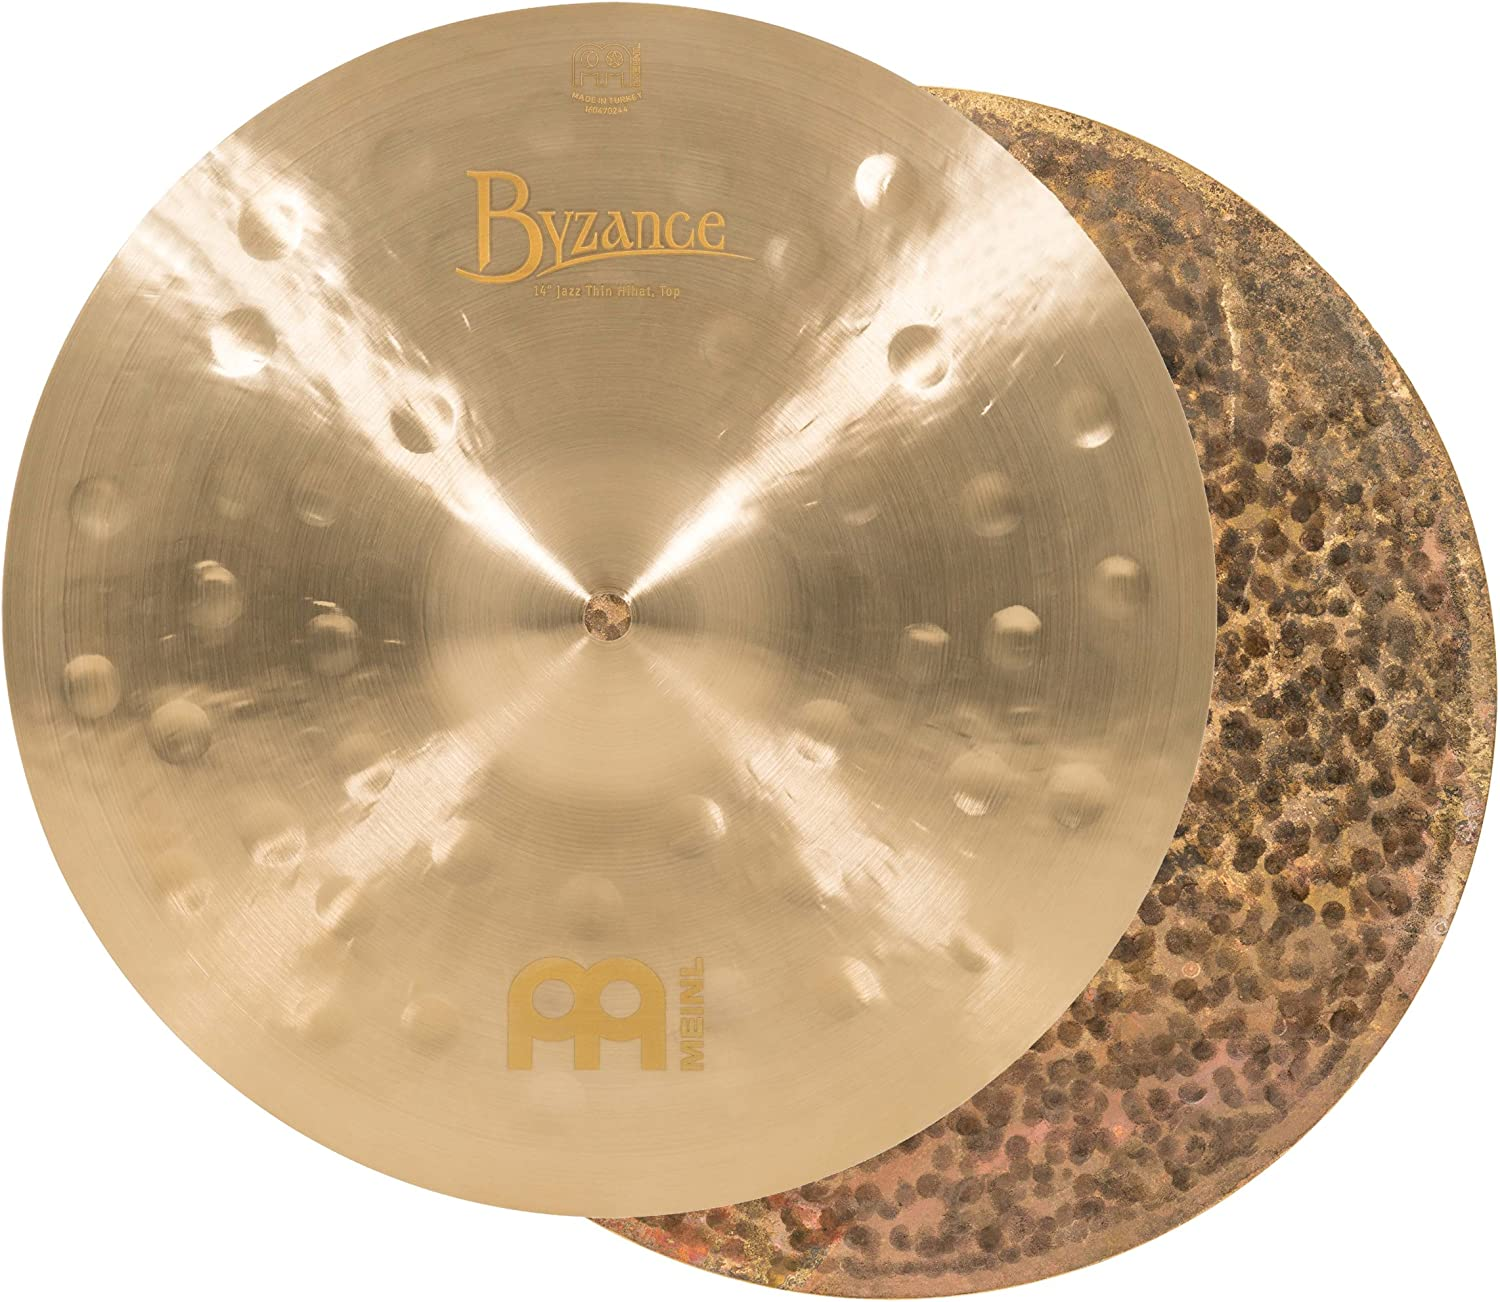 Meinl Cymbals B14JTH Byzance 14-Inch Cymbal Our shop OFFers the best service Max 86% OFF Thin Pai Hi-Hat Jazz